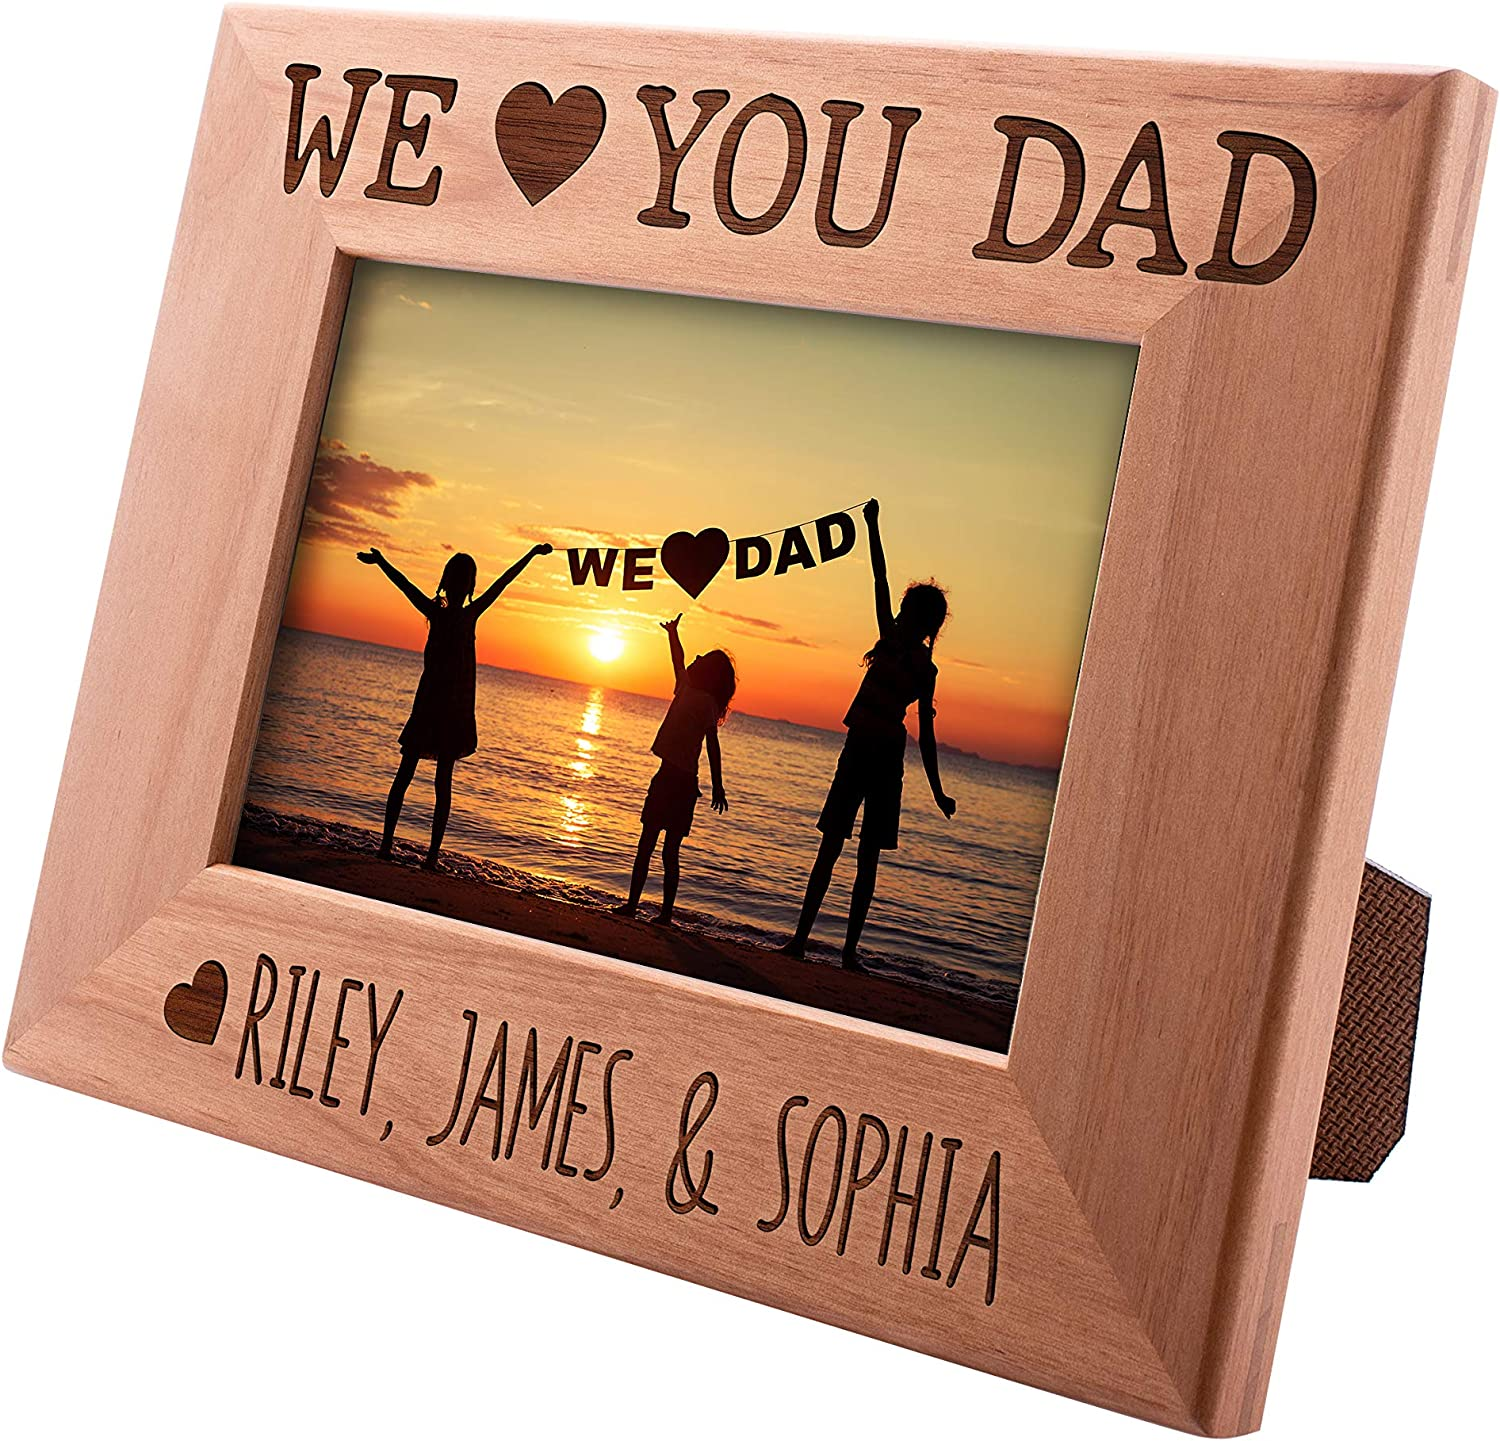 Dad Gifts Personalized Picture Frame Horizont Free Shipping Cheap Bargain Special sale item Gift - for in 4x6